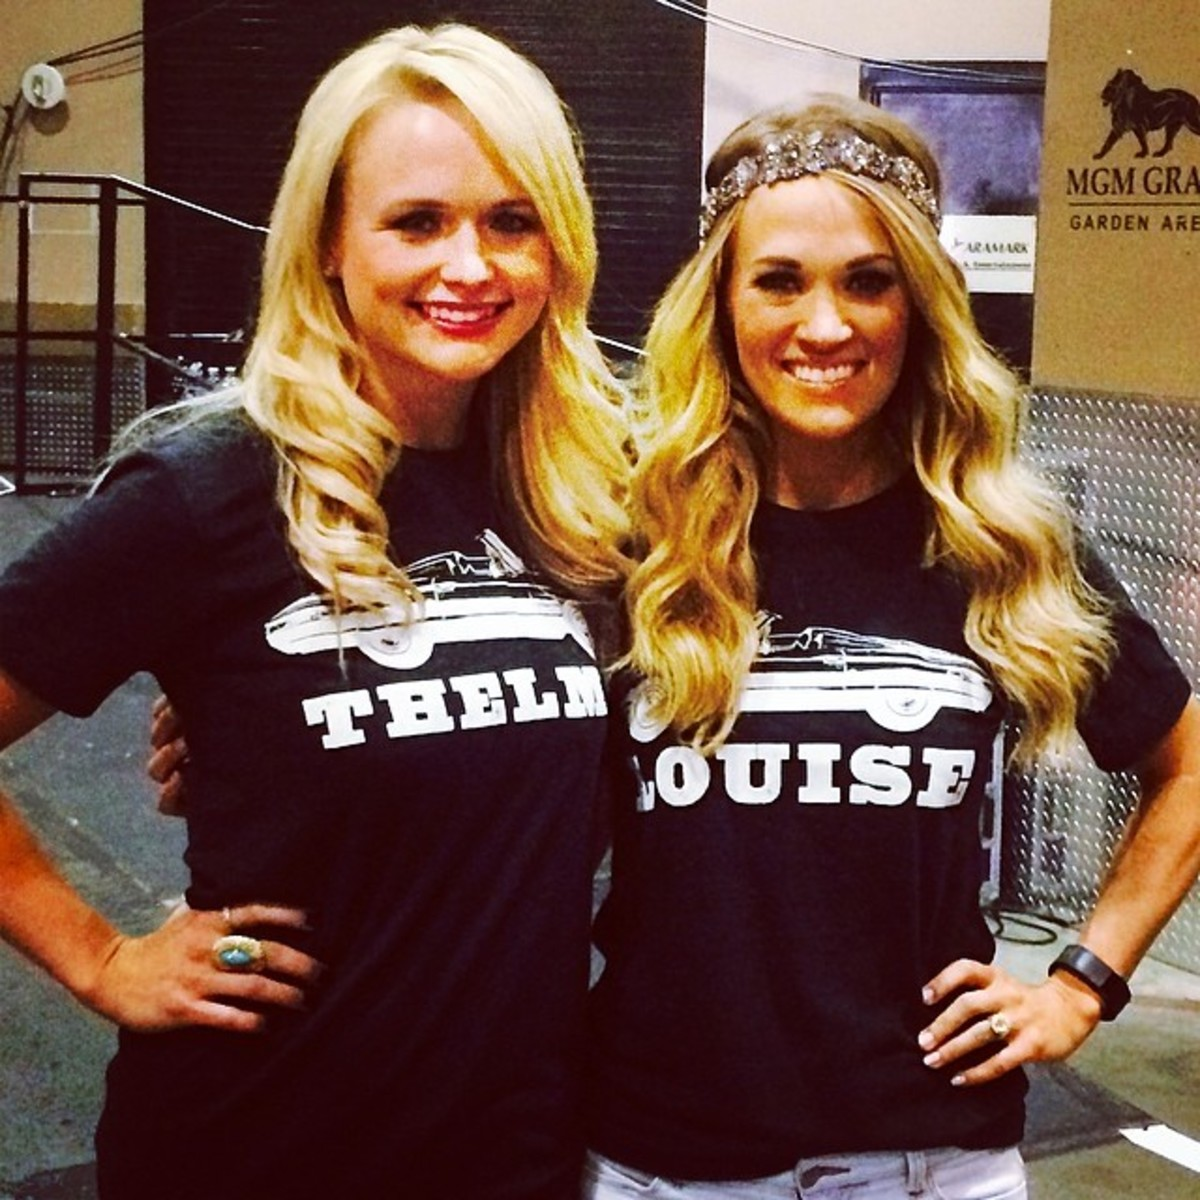 Carrie and Miranda as Thelma & Louise